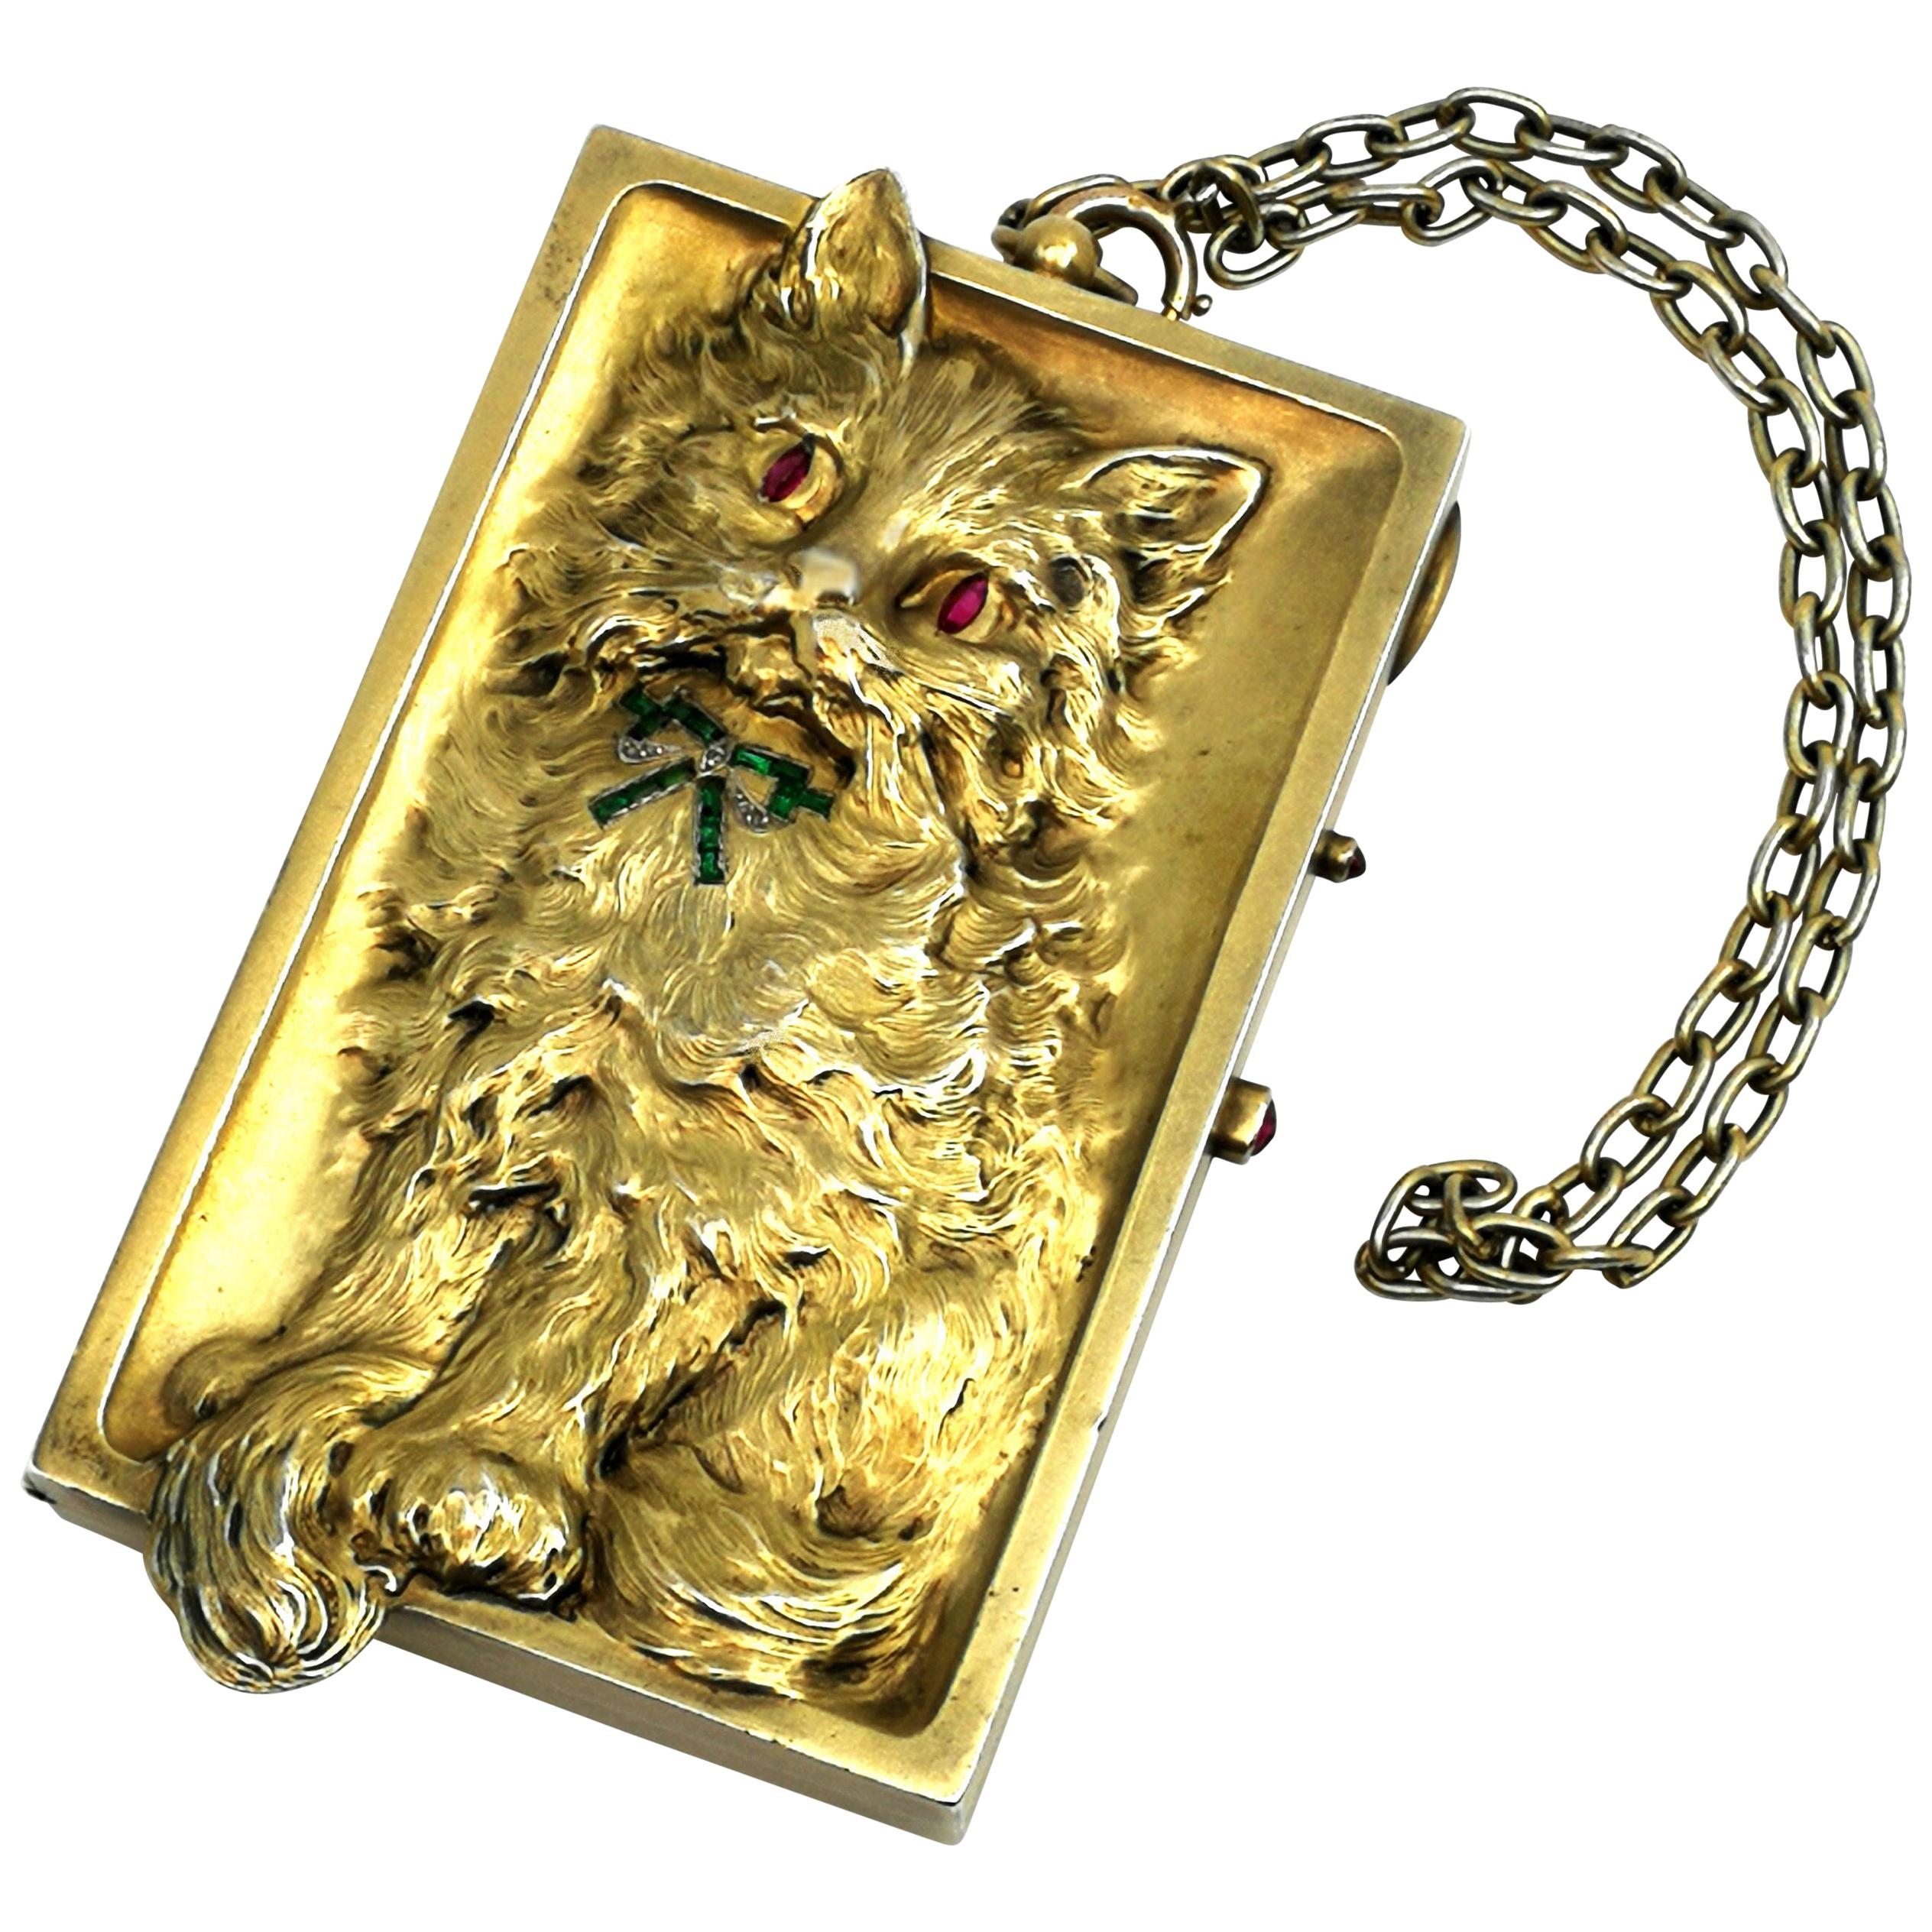 Antique German Silver Gilt Minaudiere / Compact with Ruby Emerald Diamond c 1900